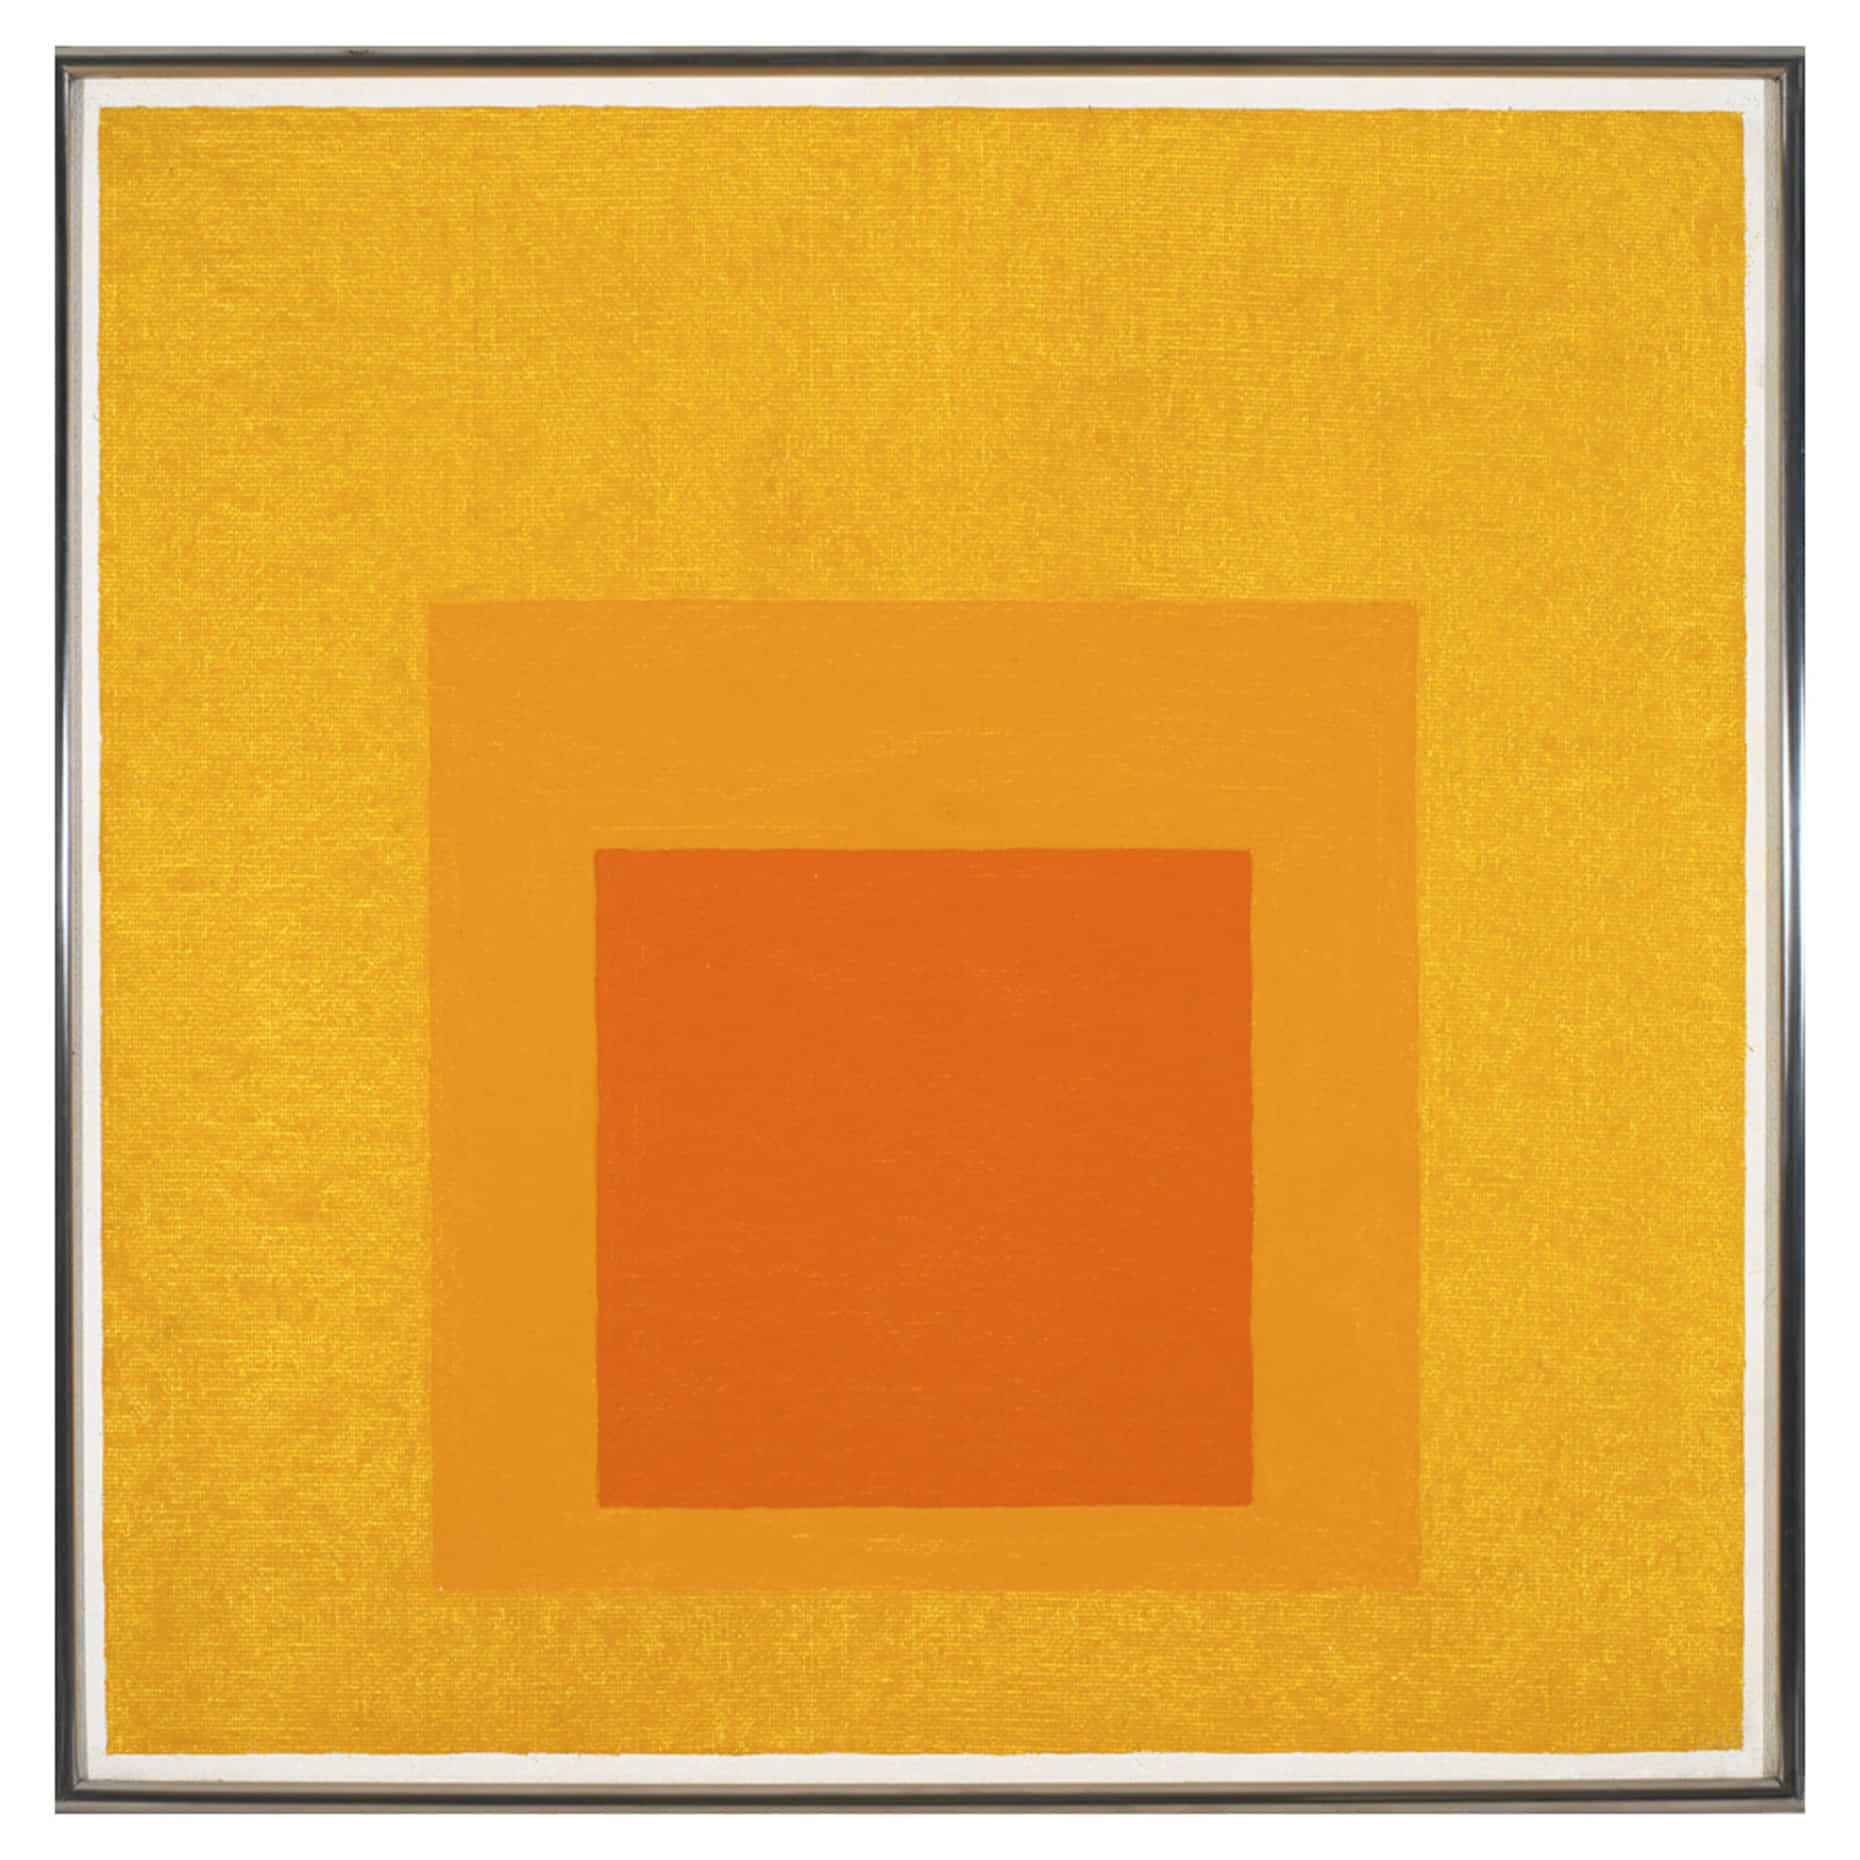 Josef Albers, Study for Homage to the Square: Aurora, 1957